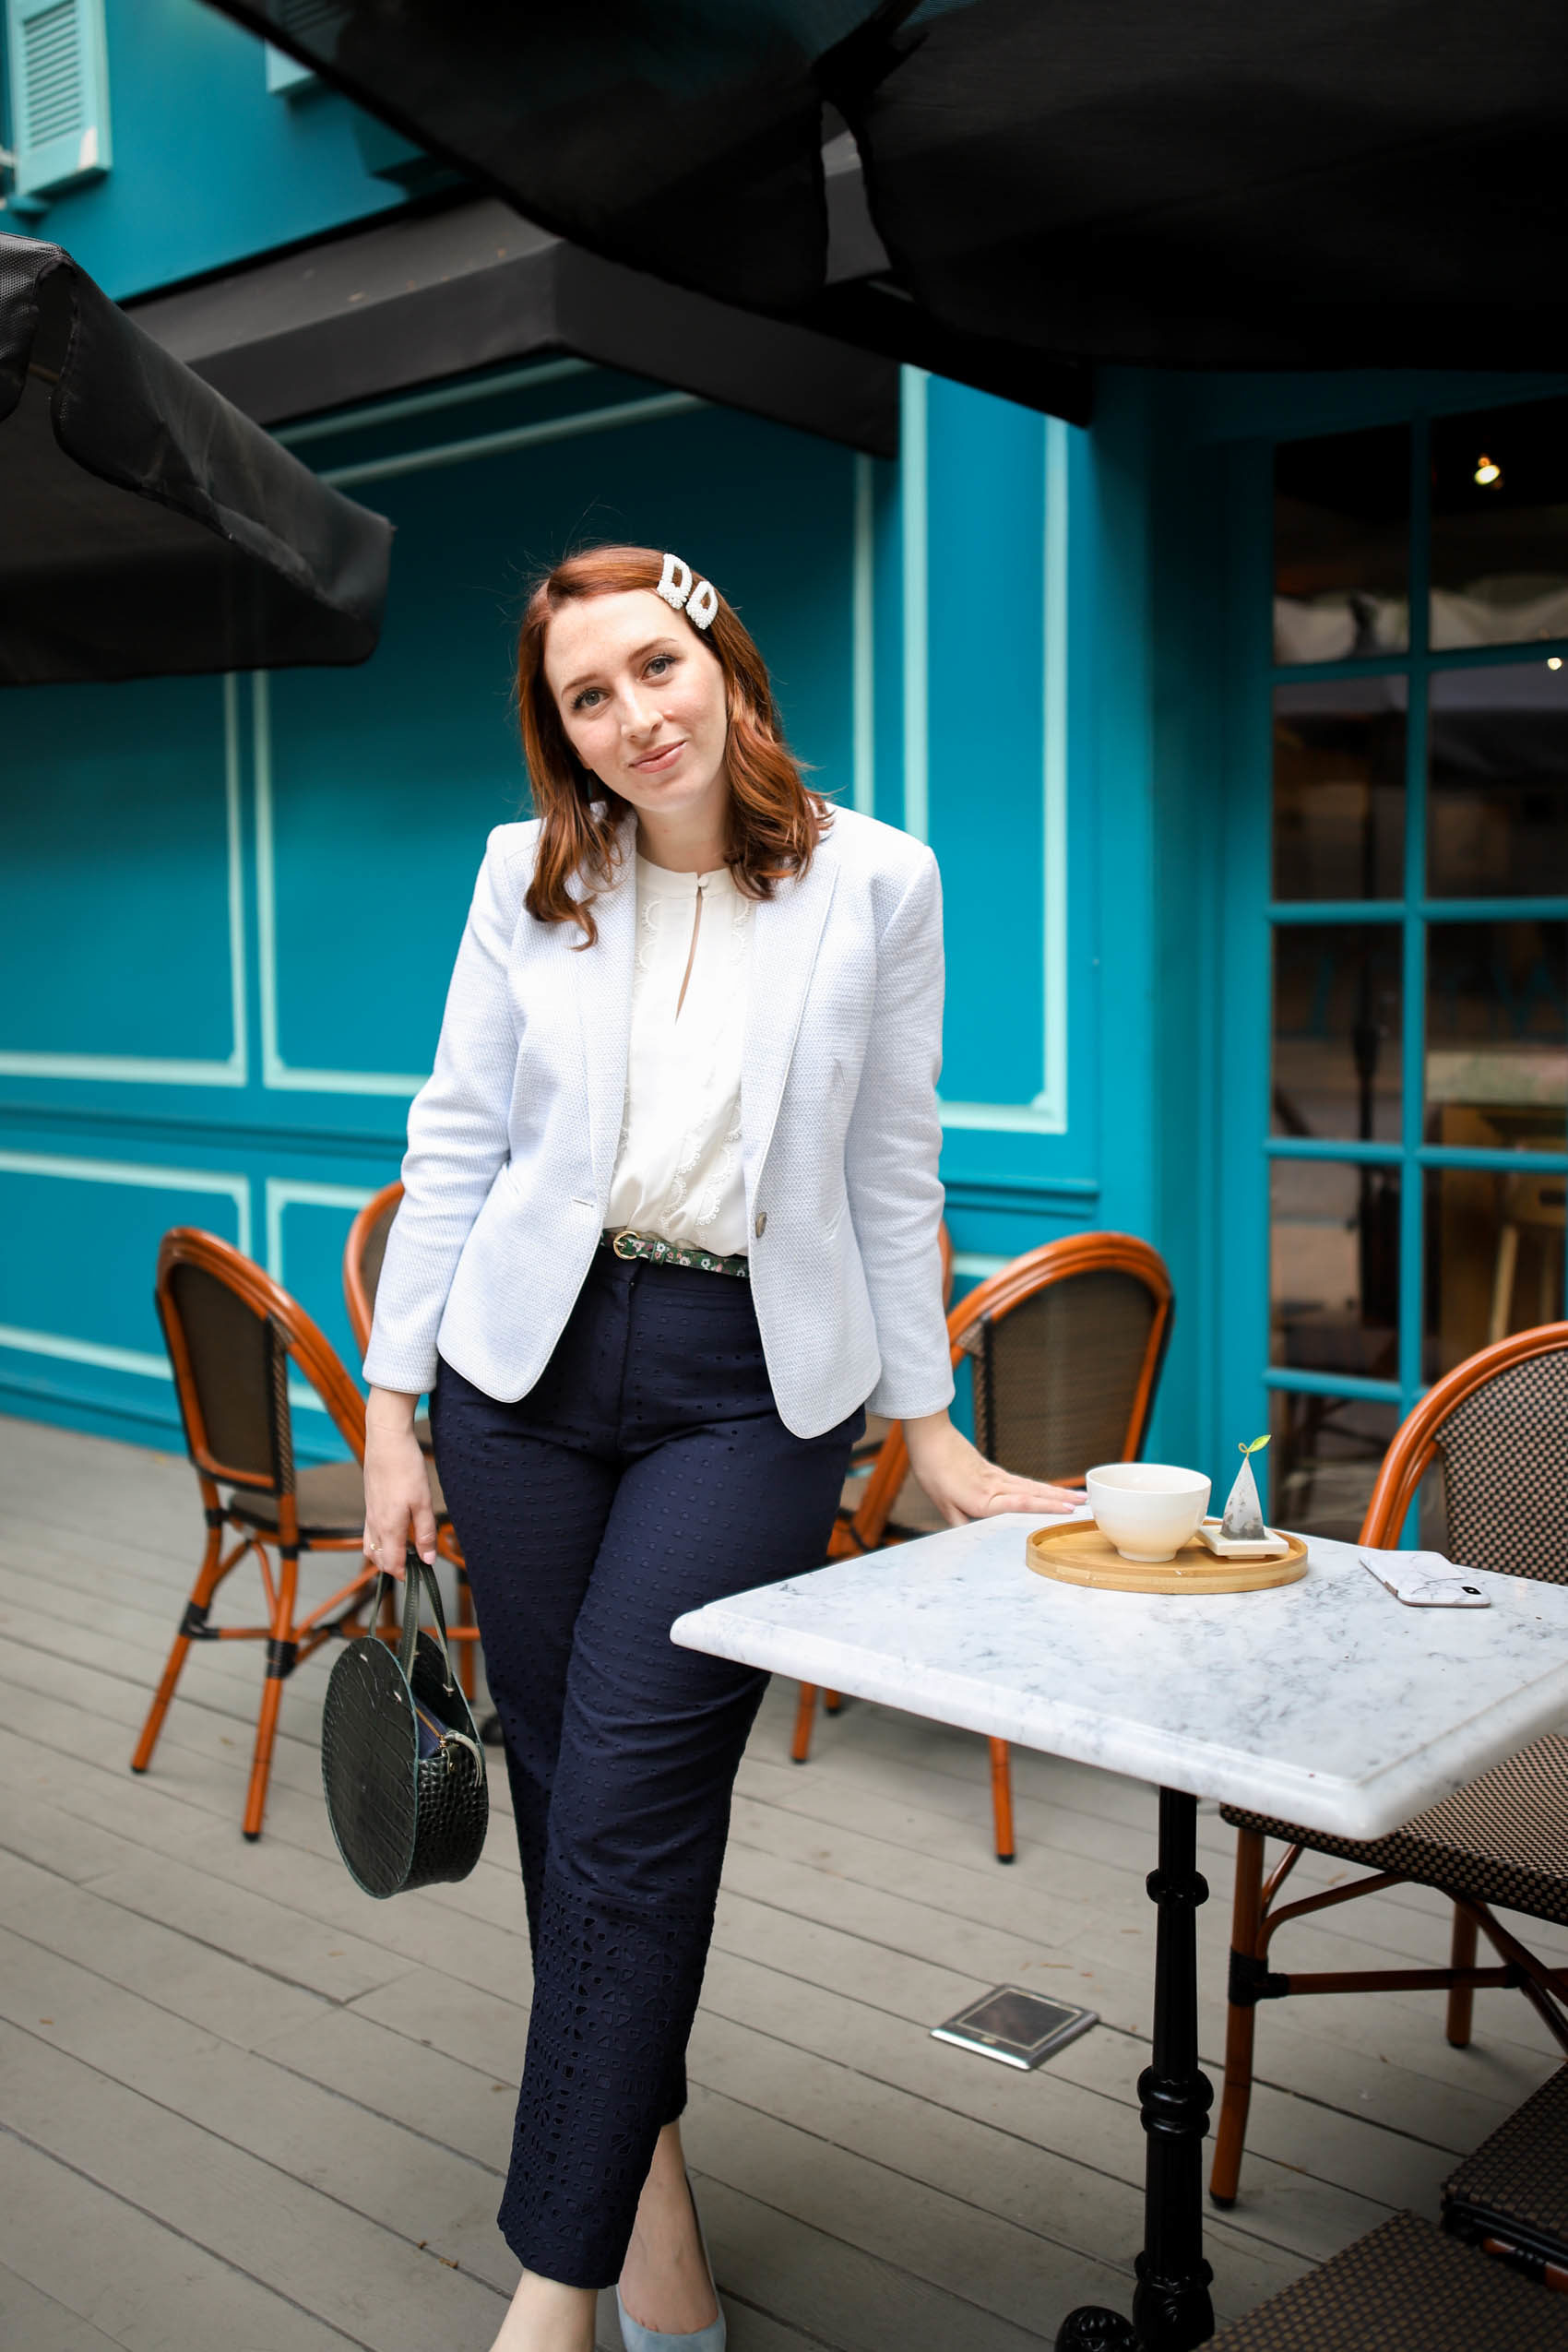 Full-Time Blogger Schedule if You Also Work Full-Time | Spring Work Outfit | Spring Workwear Inspiration #blog #blogging #blogger #spring